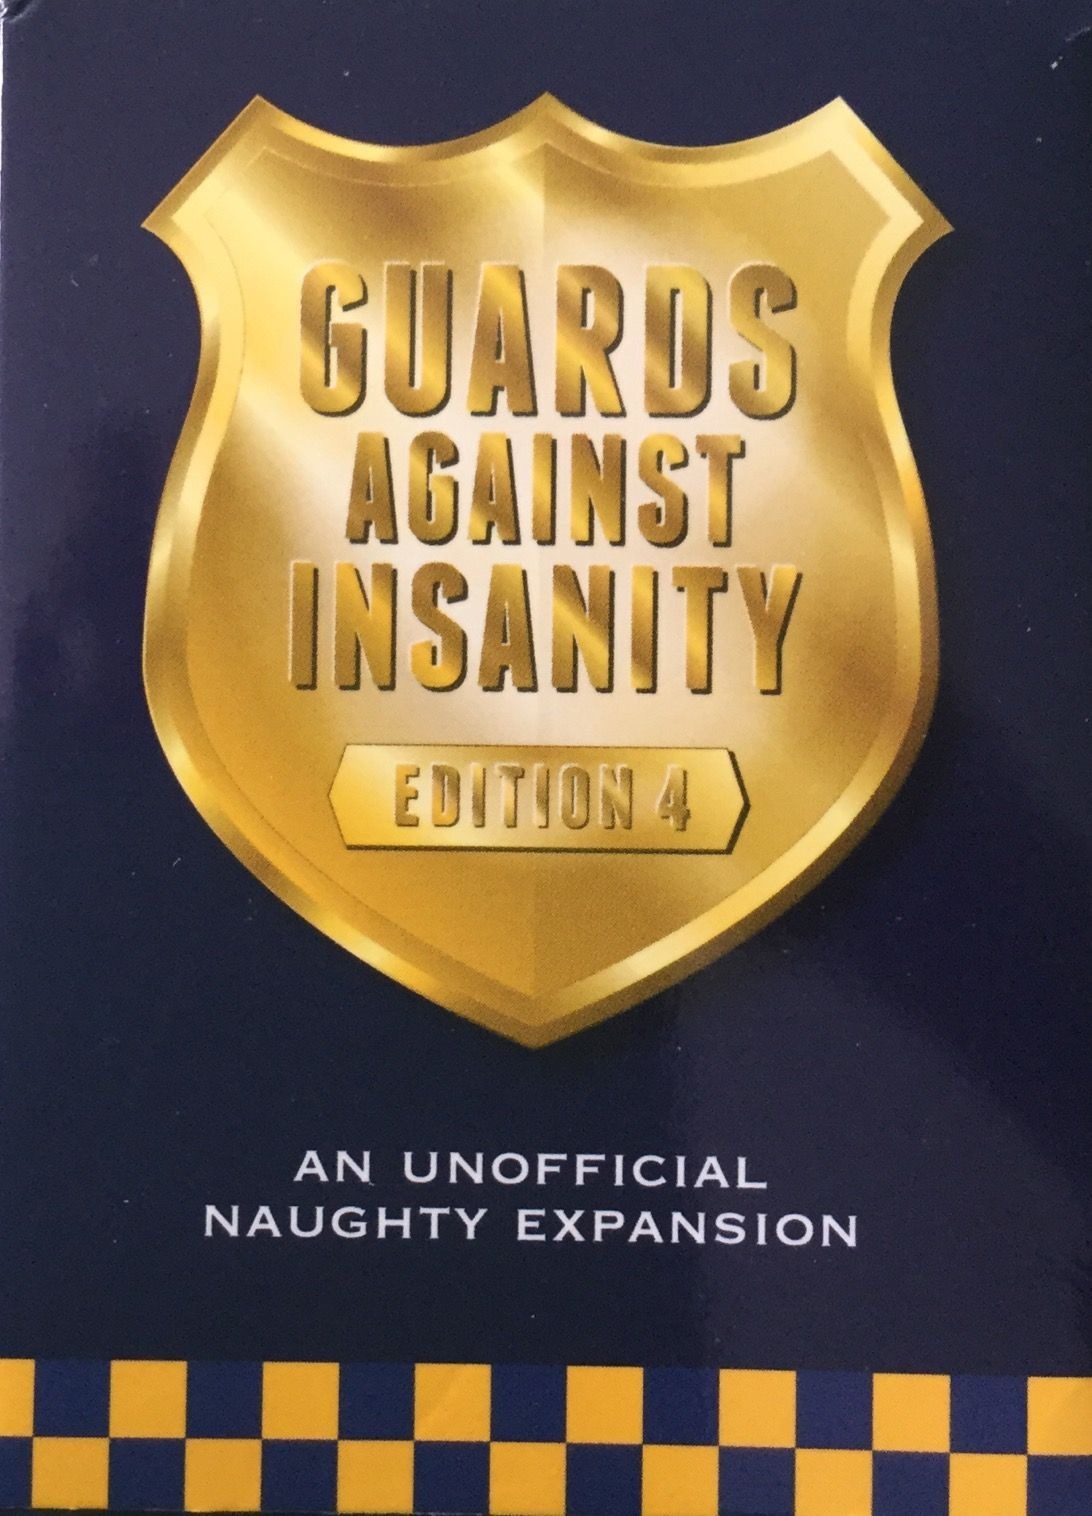 Guards Against Insanity - Edition 4 image